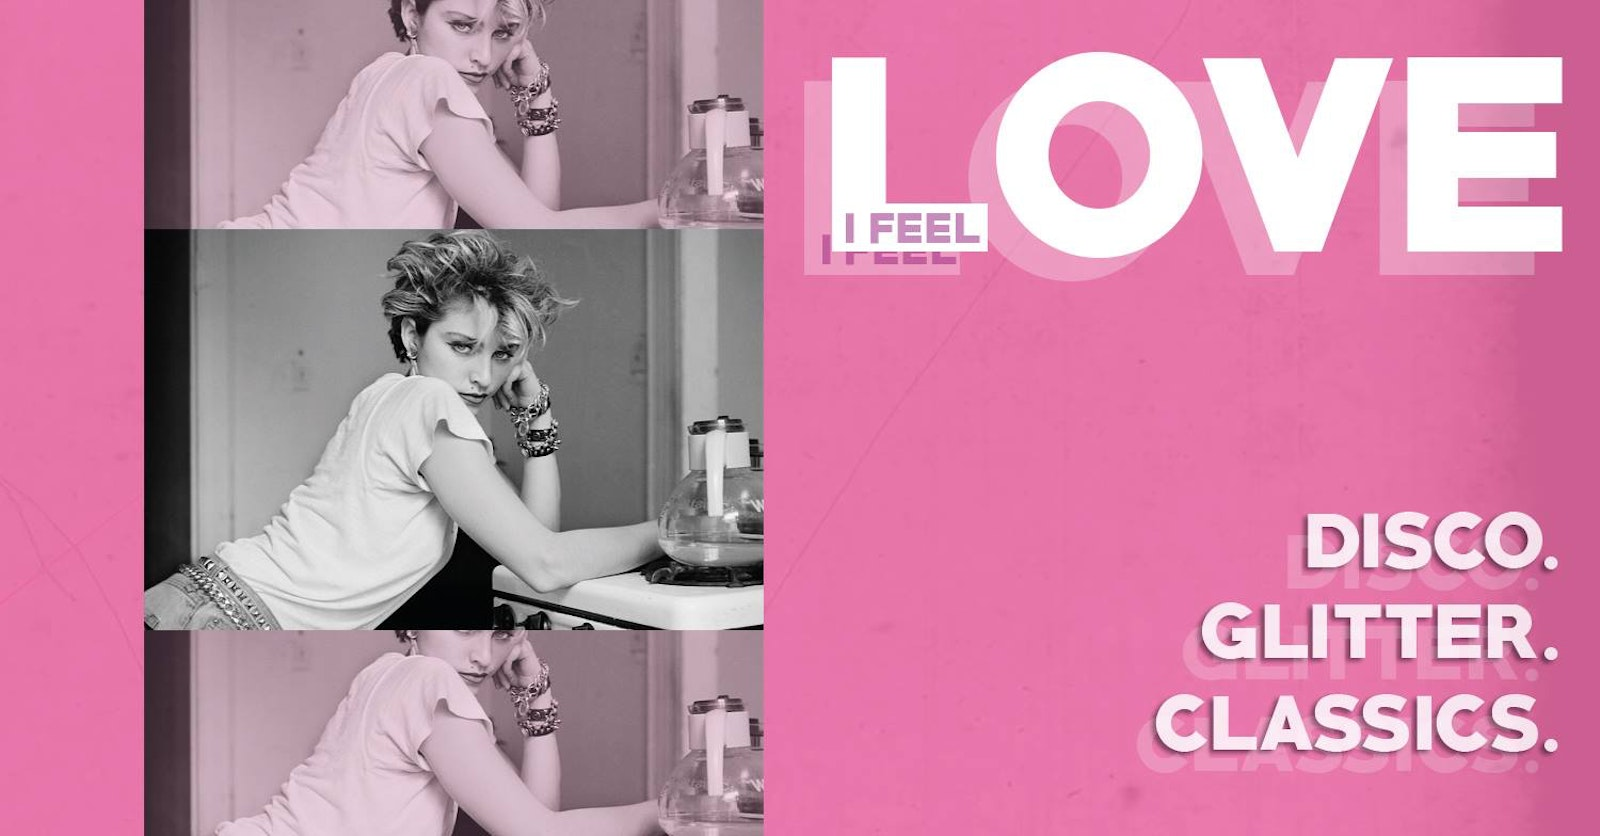 I Feel Love – Disco, Glitter, Classics